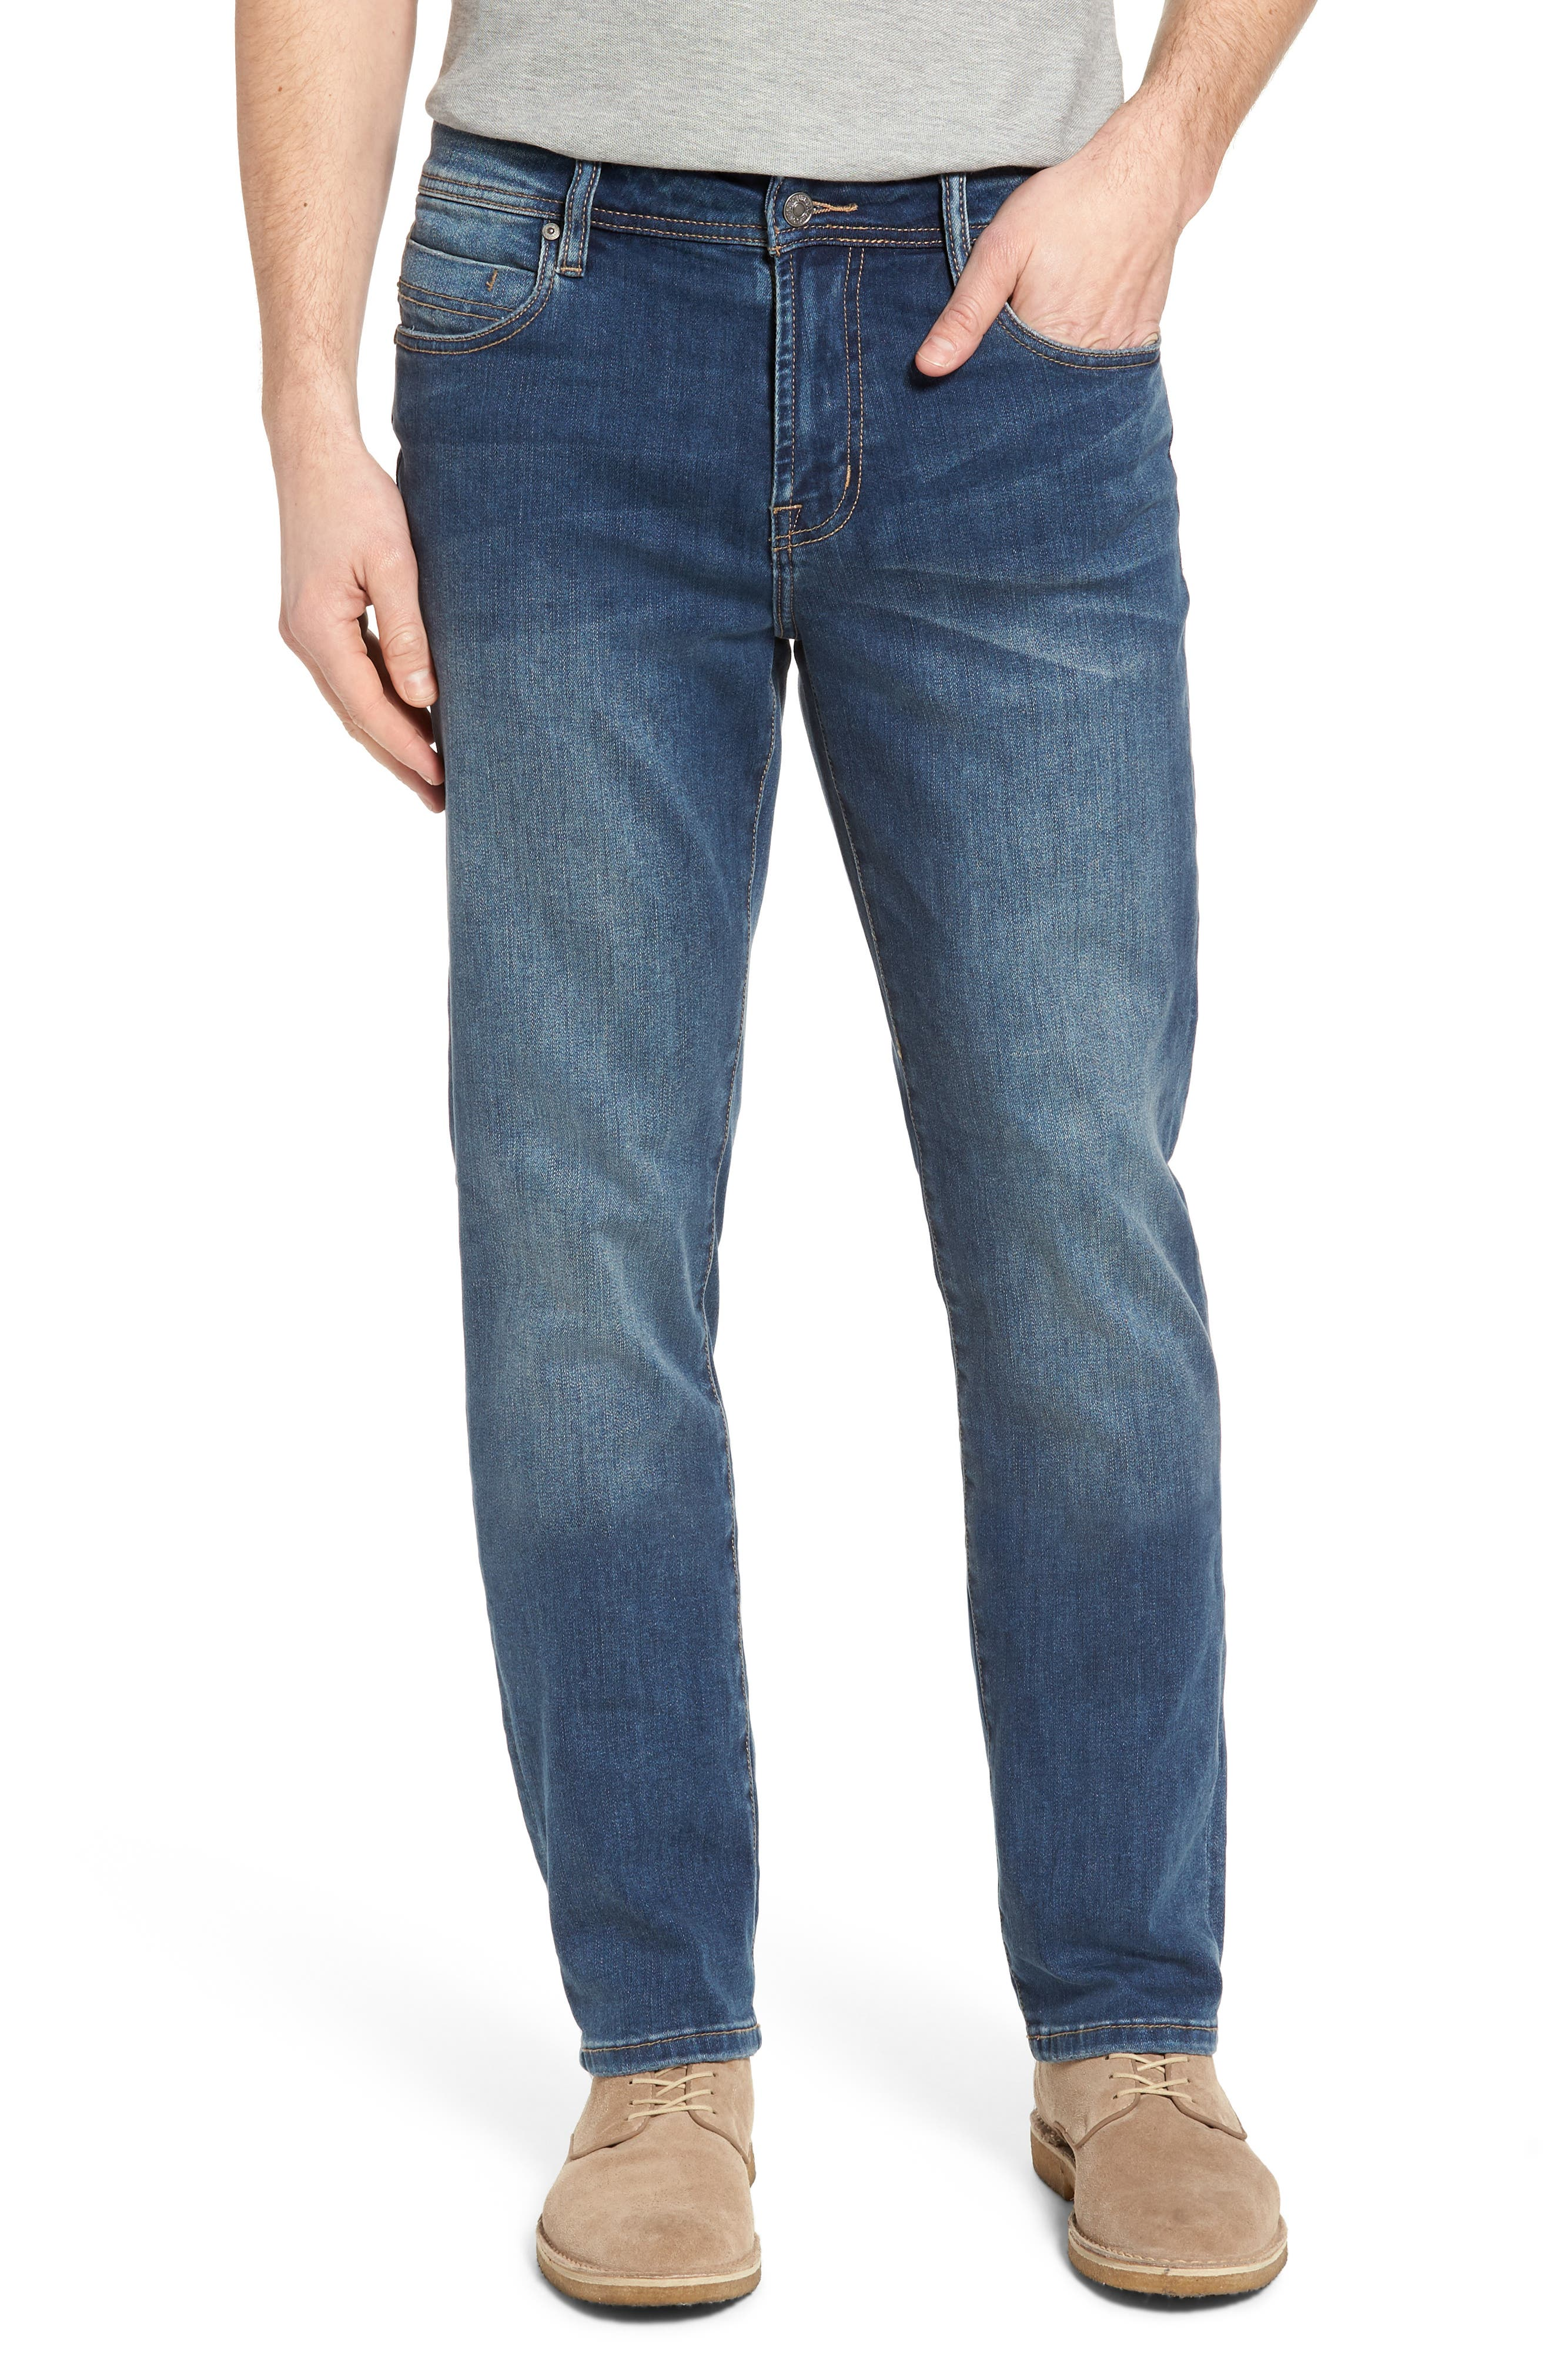 LIVERPOOL, Regent Relaxed Straight Leg Jeans, Main thumbnail 1, color, CHATSWORTH